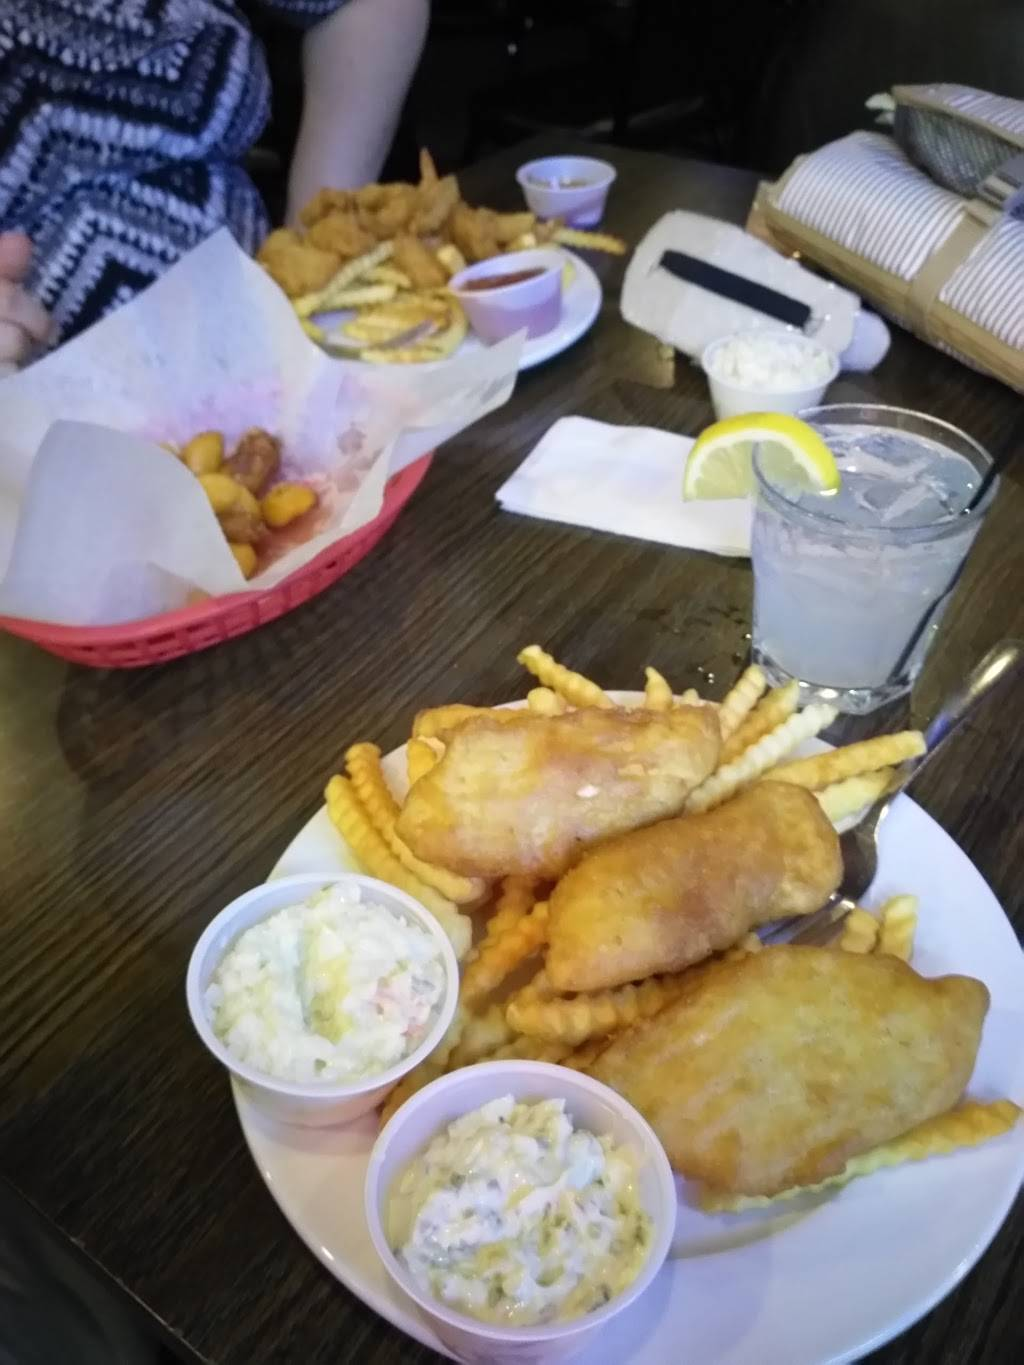 The Timbers | restaurant | 208 W North St, DeForest, WI 53532, USA | 6088465575 OR +1 608-846-5575